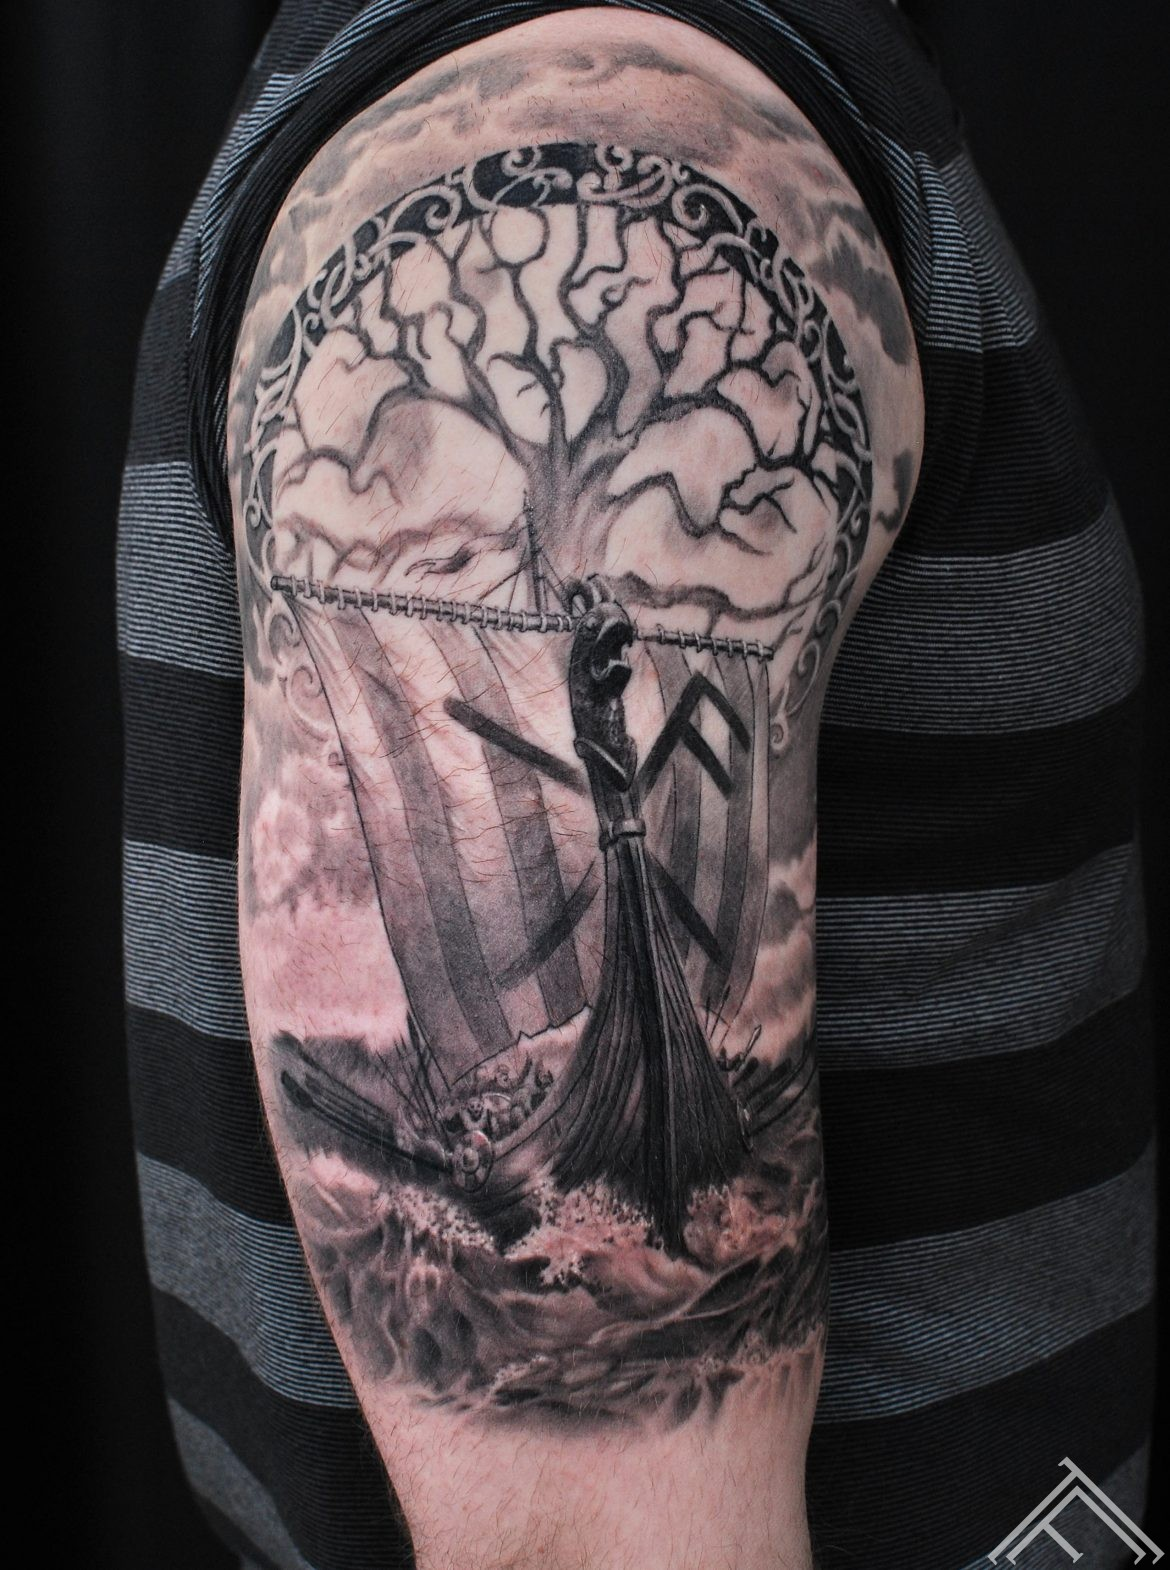 janisandersons-kugis-ship-tattoo-tetovejums-art-tattoofrequency-symbol-vikings-ar udenszimi-fb-m.lapa